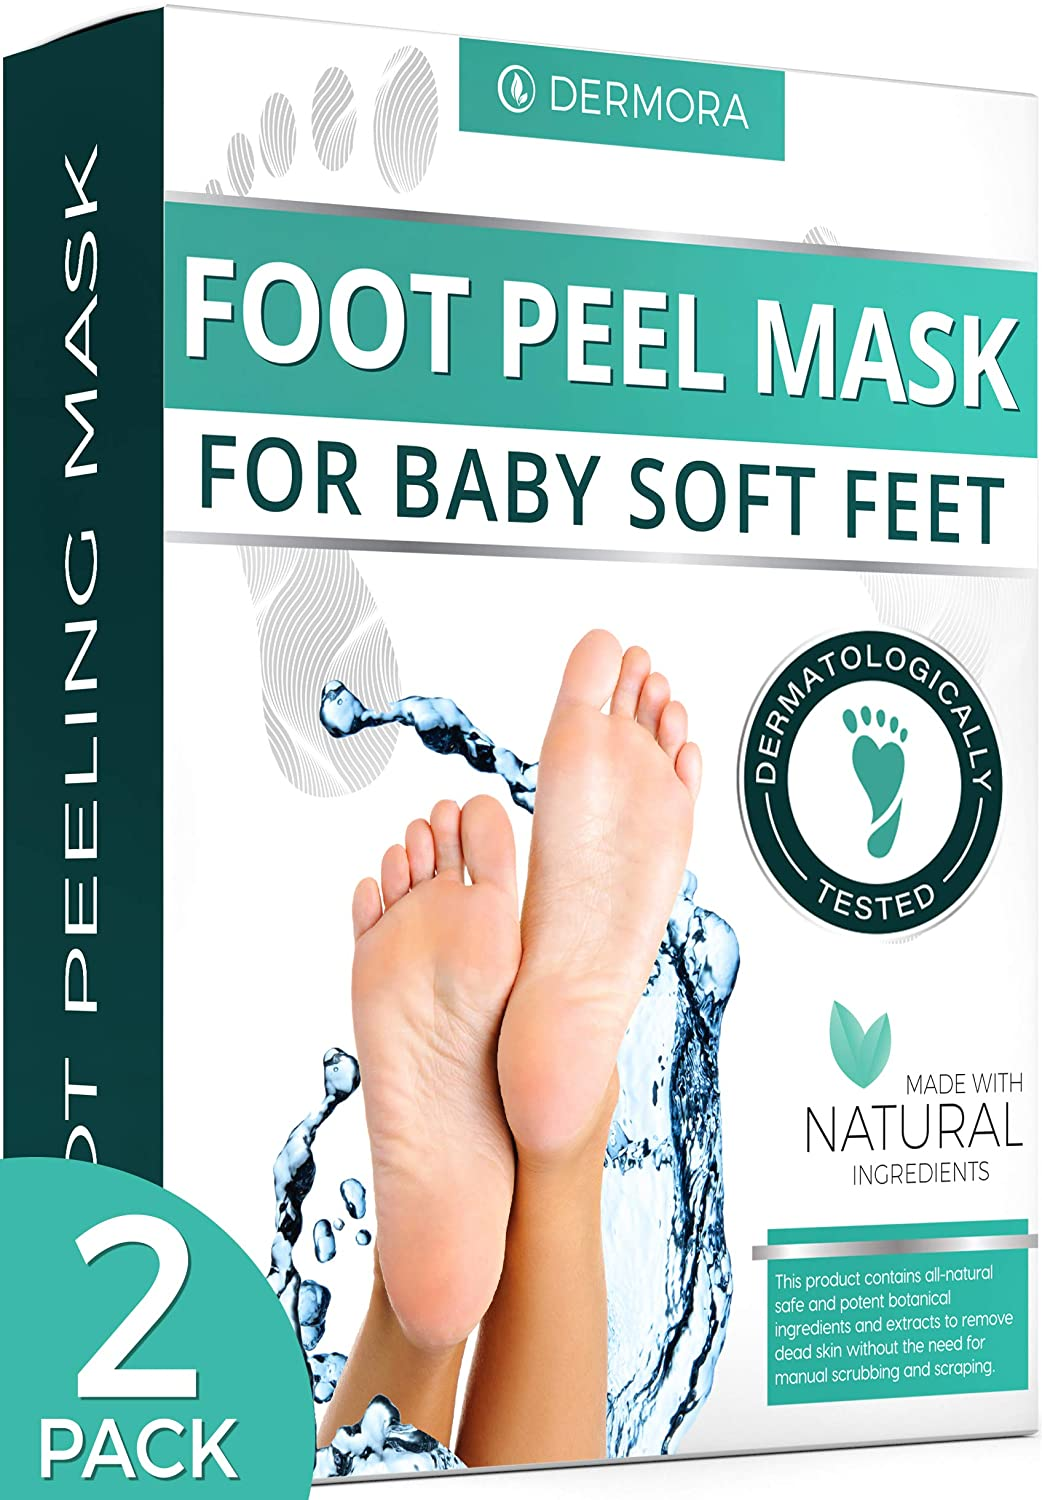 A foot peel Mask is definitely a very thoughtful gift for women over 40 as their feet get very dry and rough especially in the winter season. This foot peel mask targets cracked heels, calluses, and dead skin. It will give your loved one baby soft feet and will put a smile on her face.